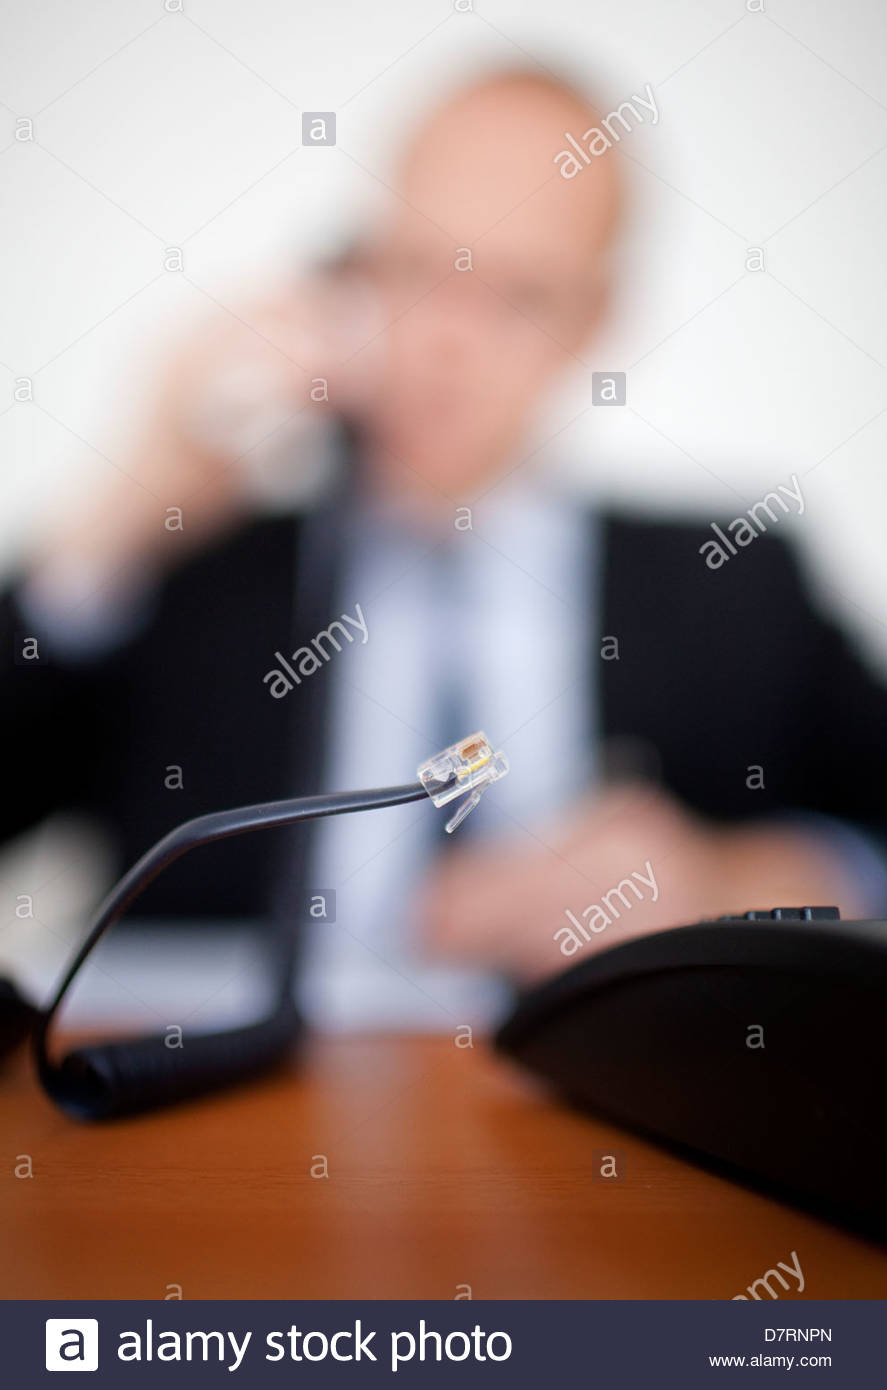 Unplugged cable of a telephone with a businessman in the background - Stock Image